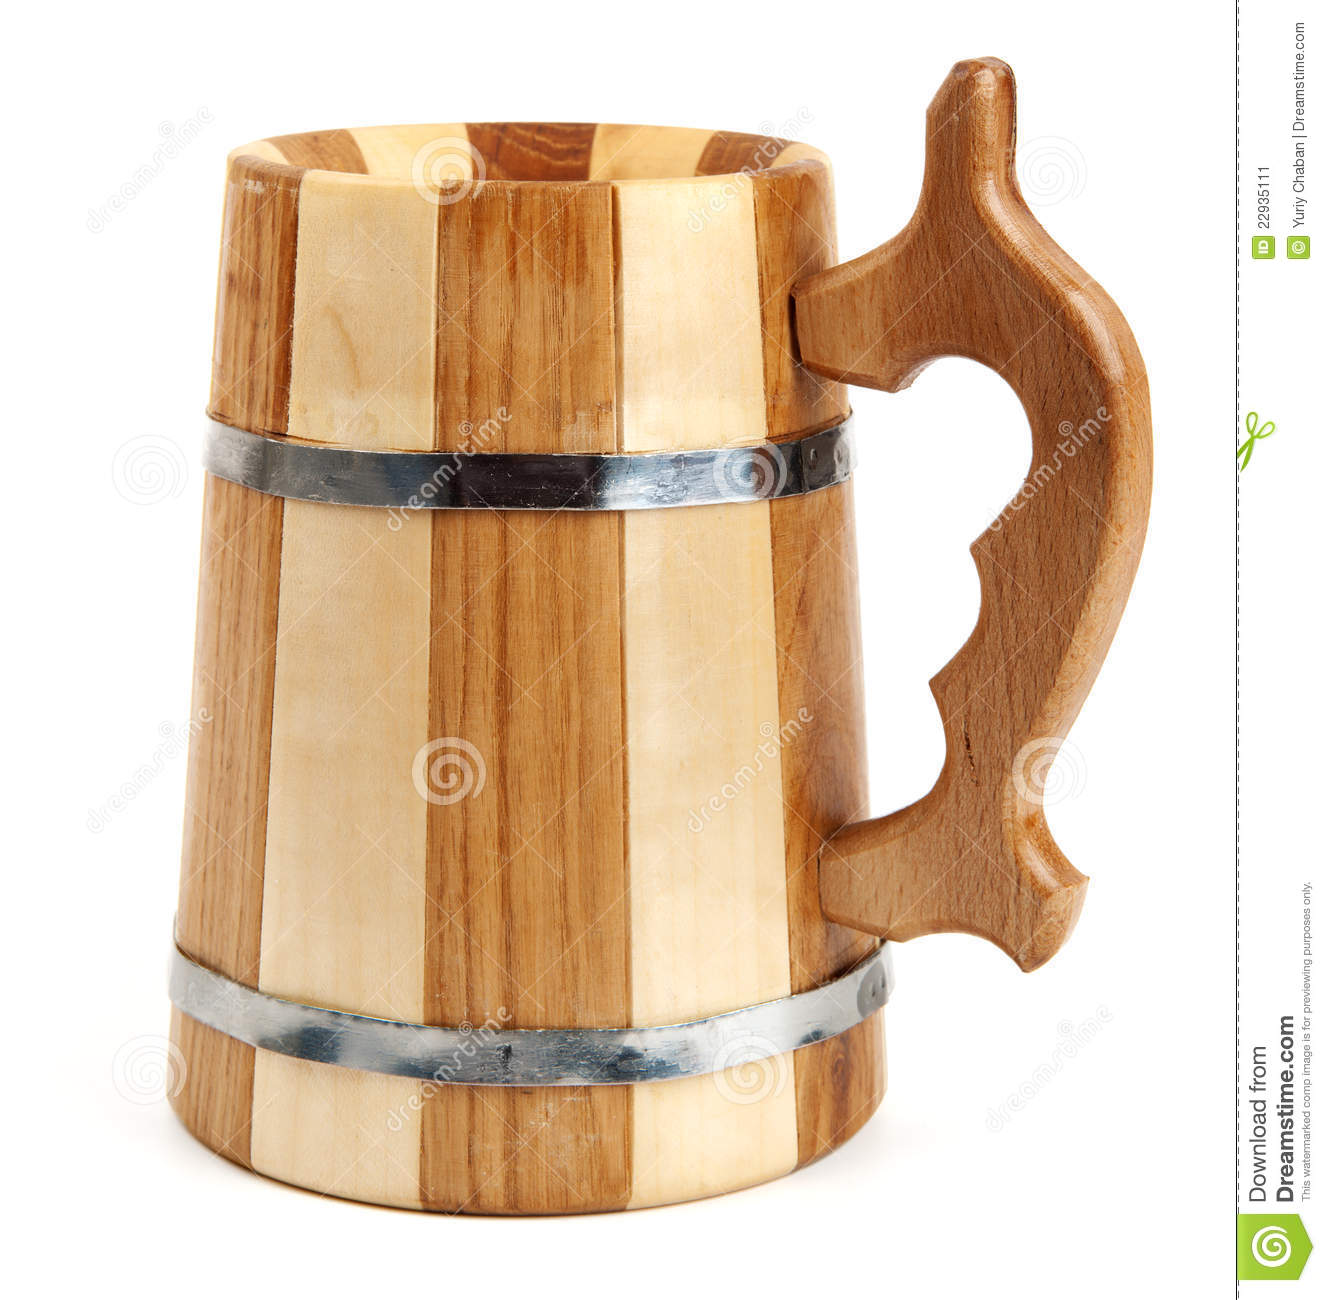 big wooden mug as barrel stock image image 22935111